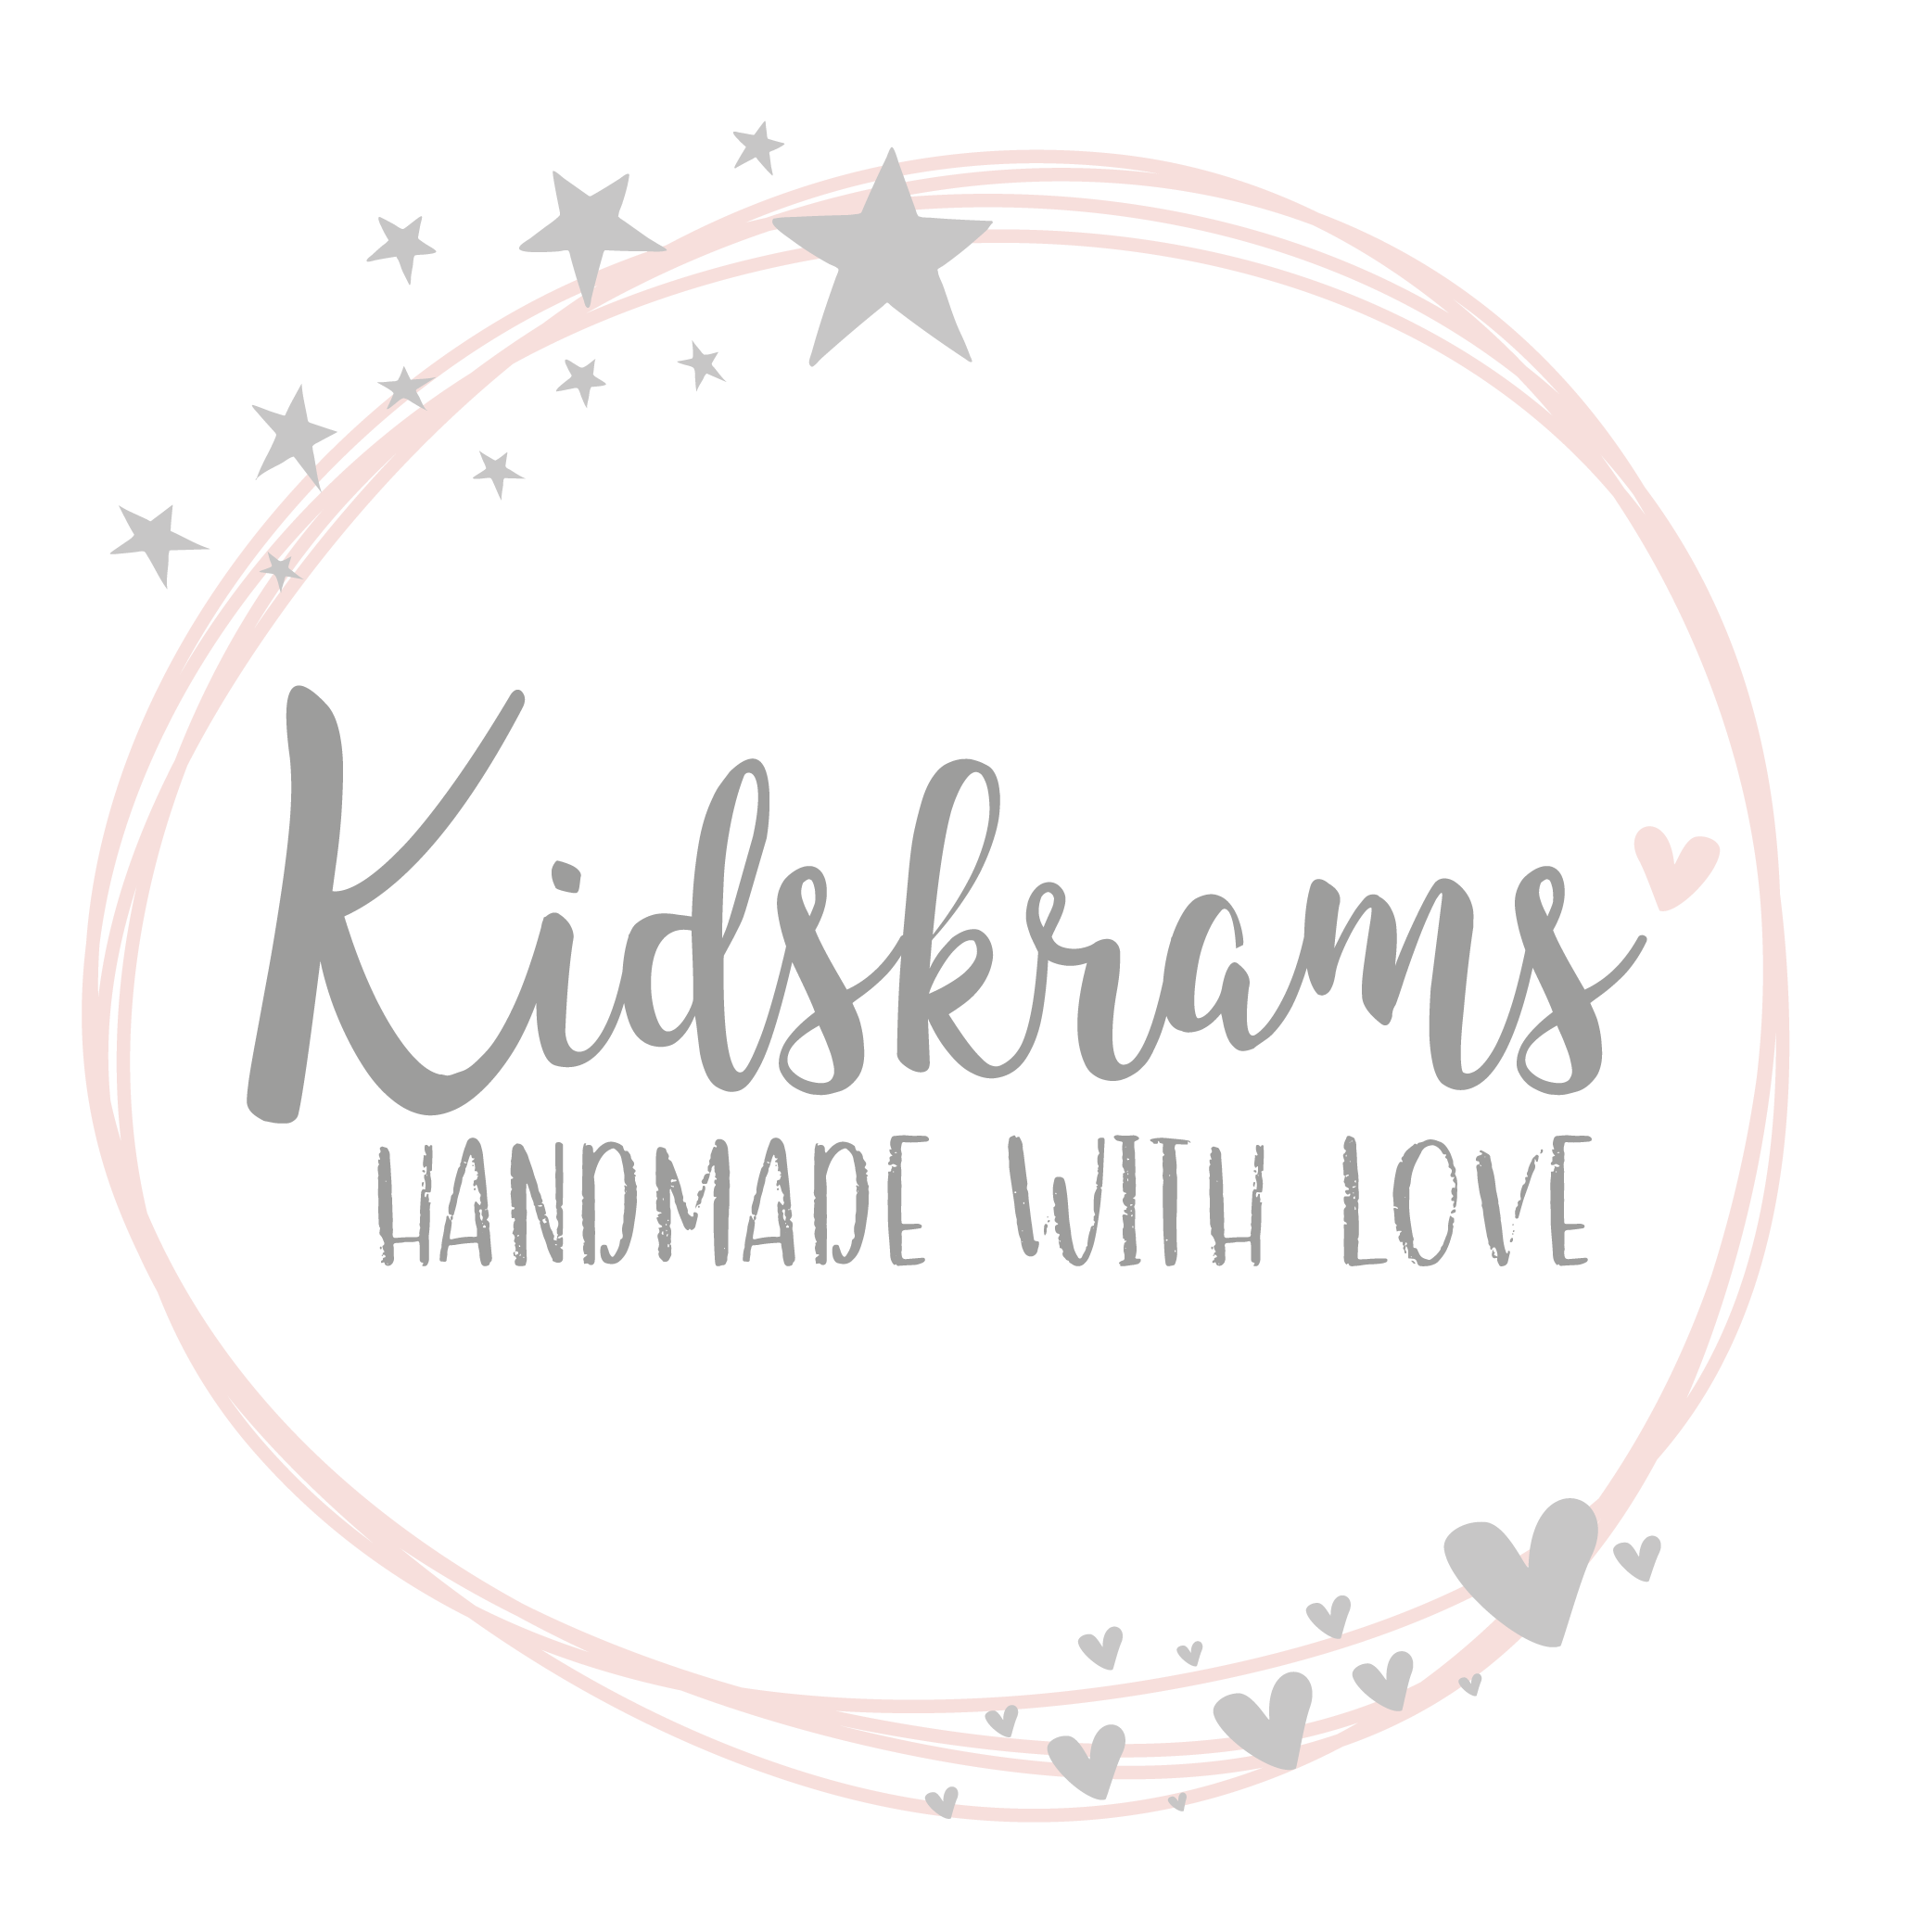 Kidskrams_th-01